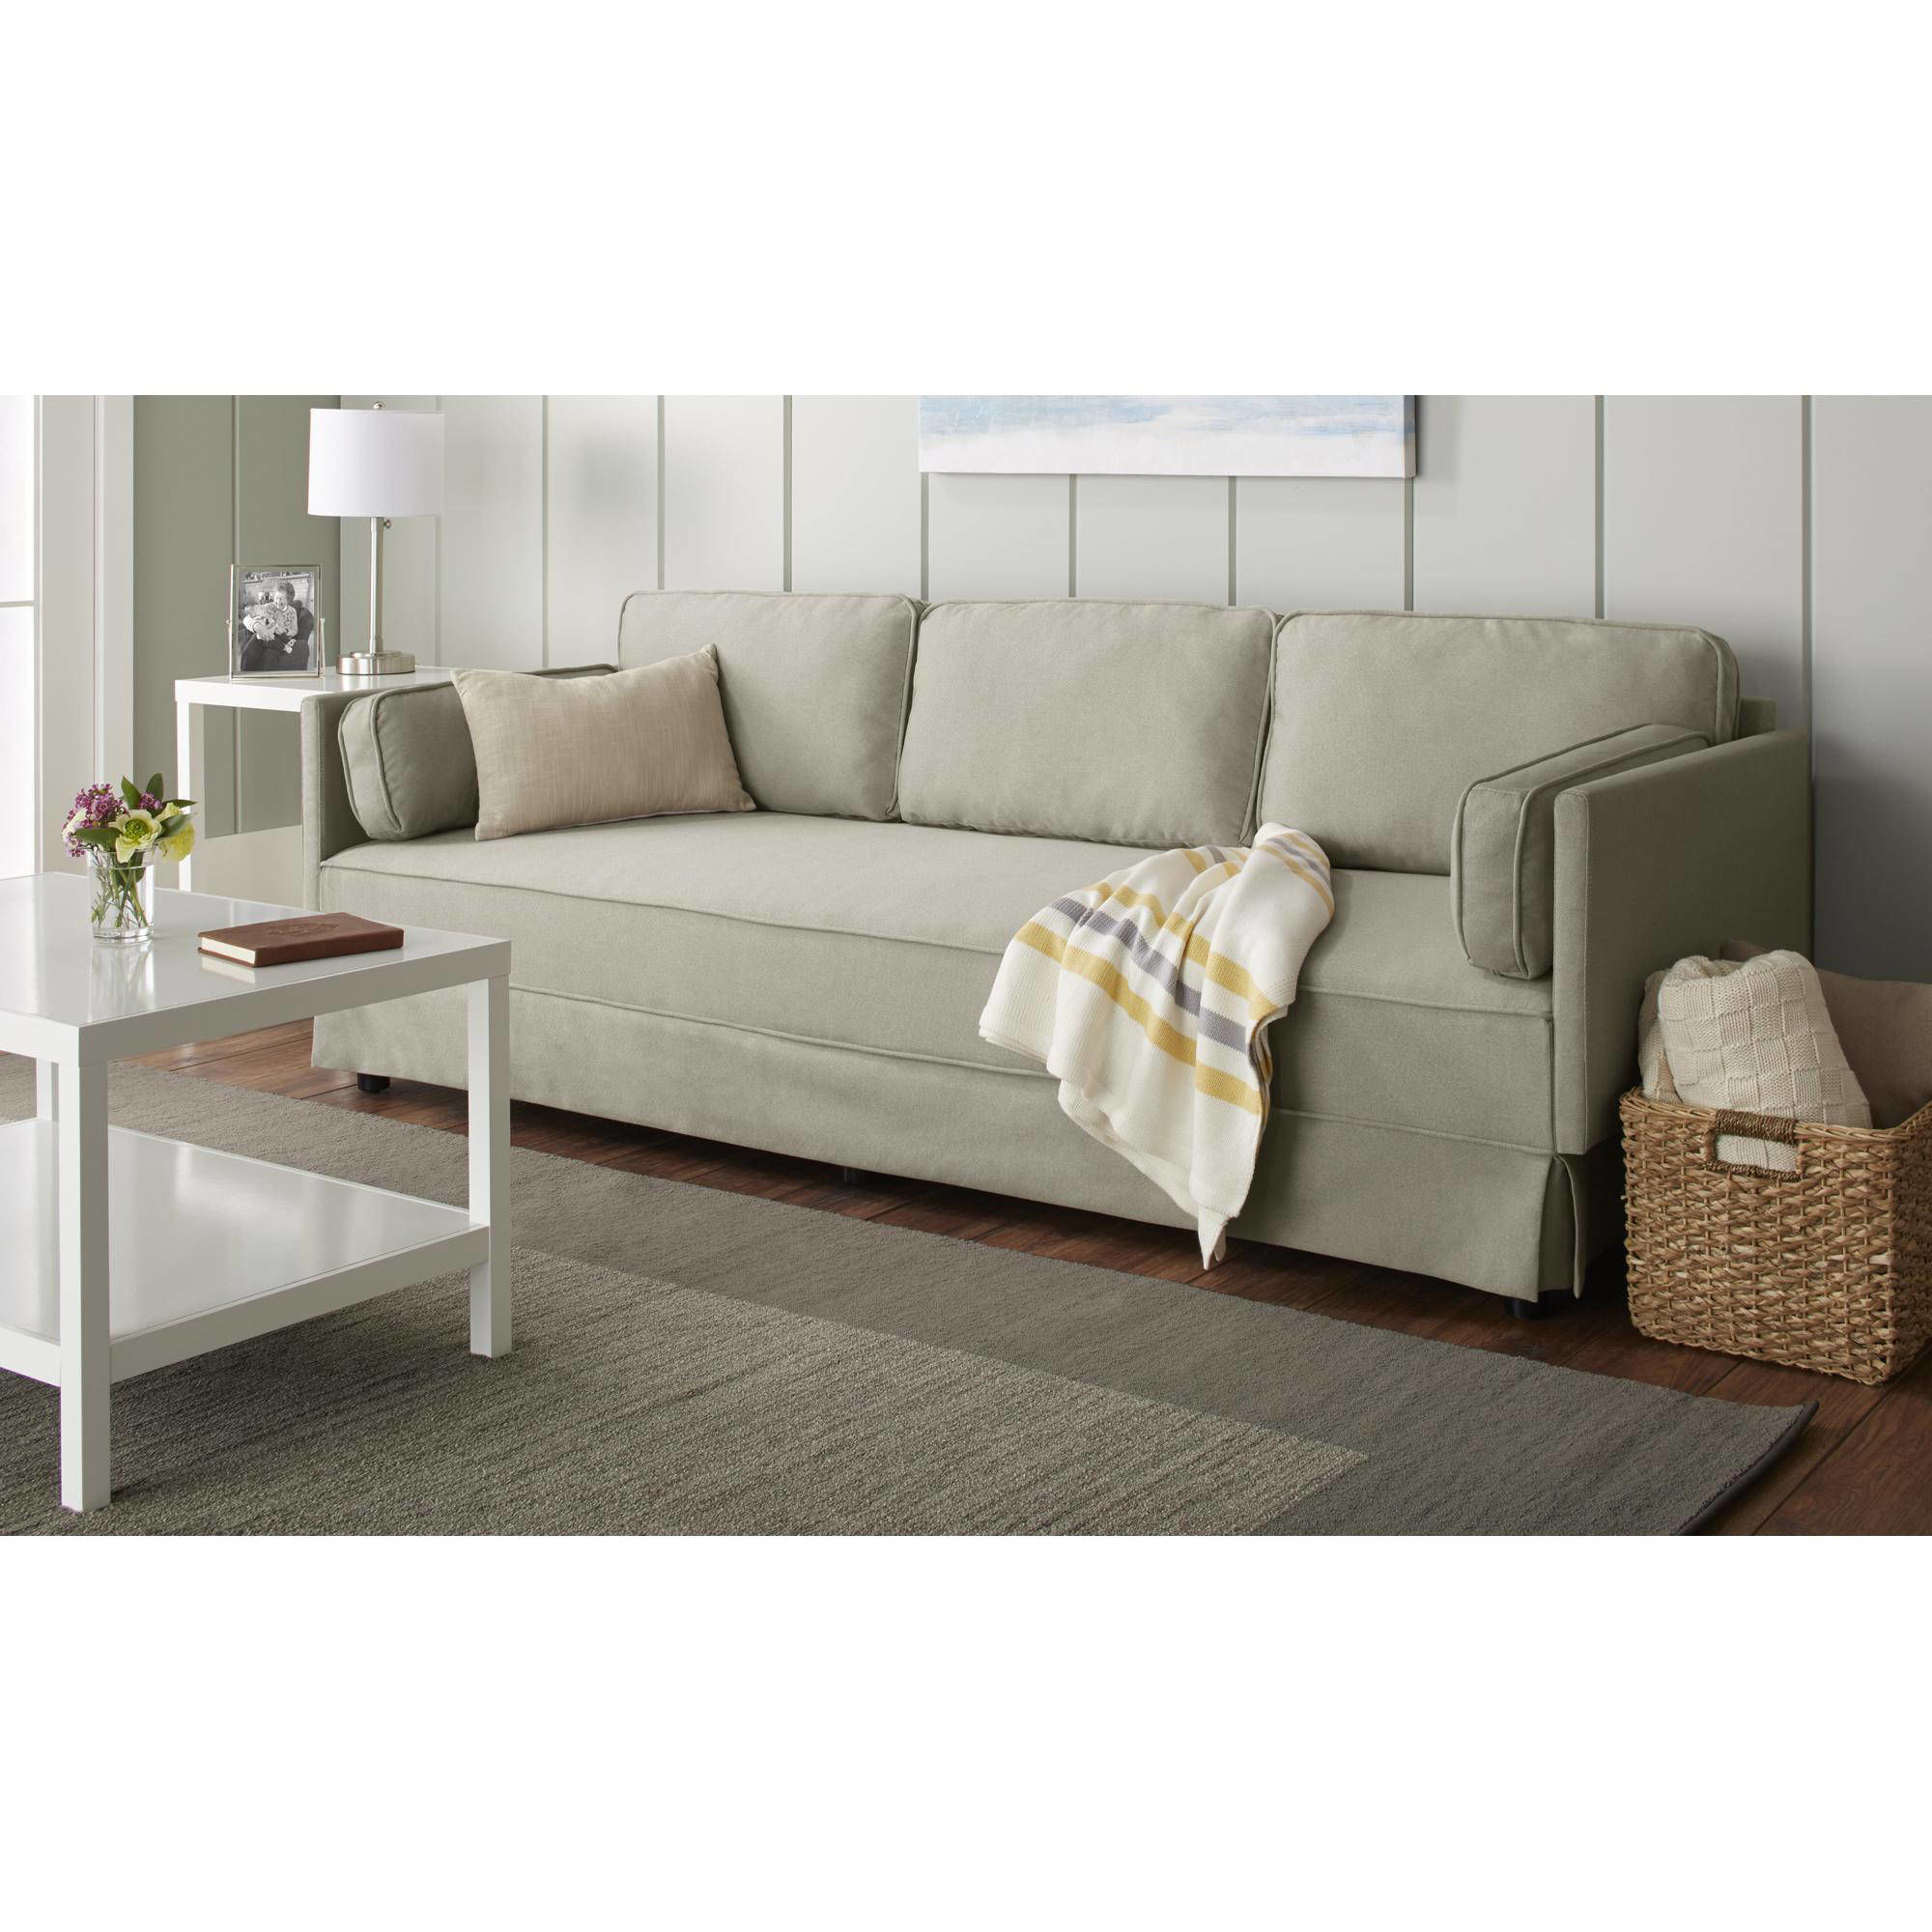 wonderful sofa bed covers layout-Lovely sofa Bed Covers Concept